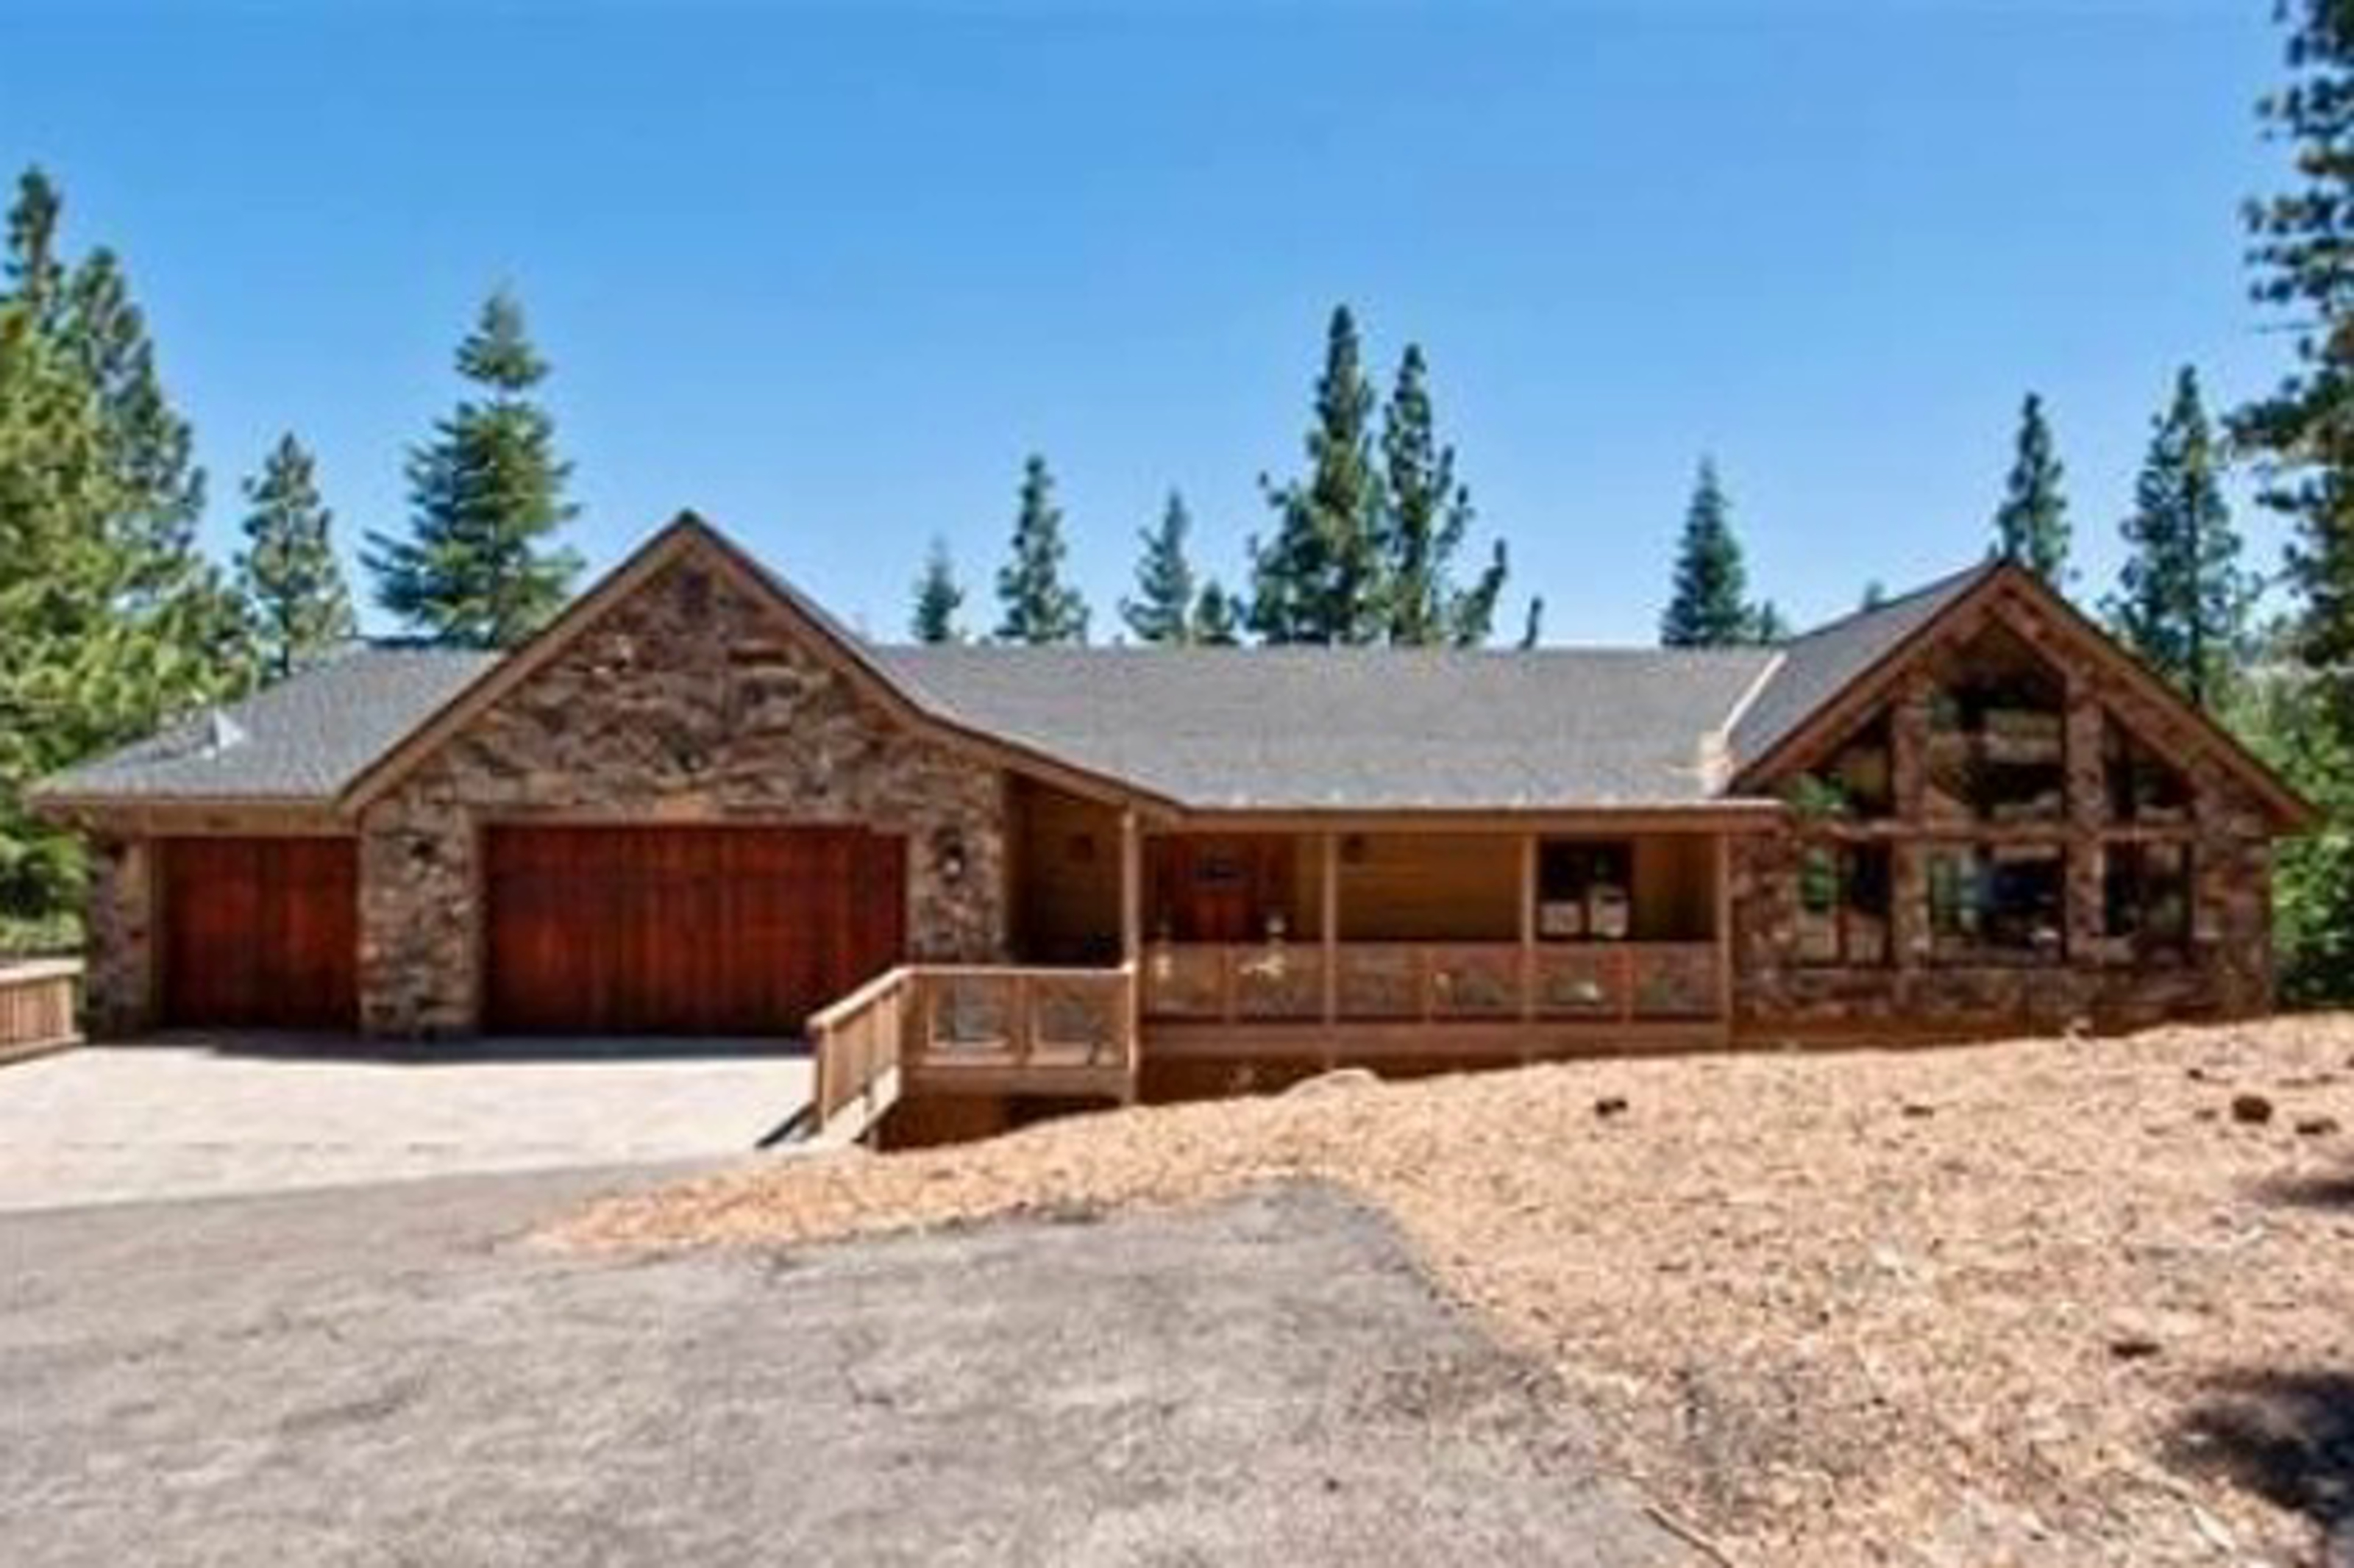 south lake ca cabins alice vacation booking us rd com cabin hotel tahoe home